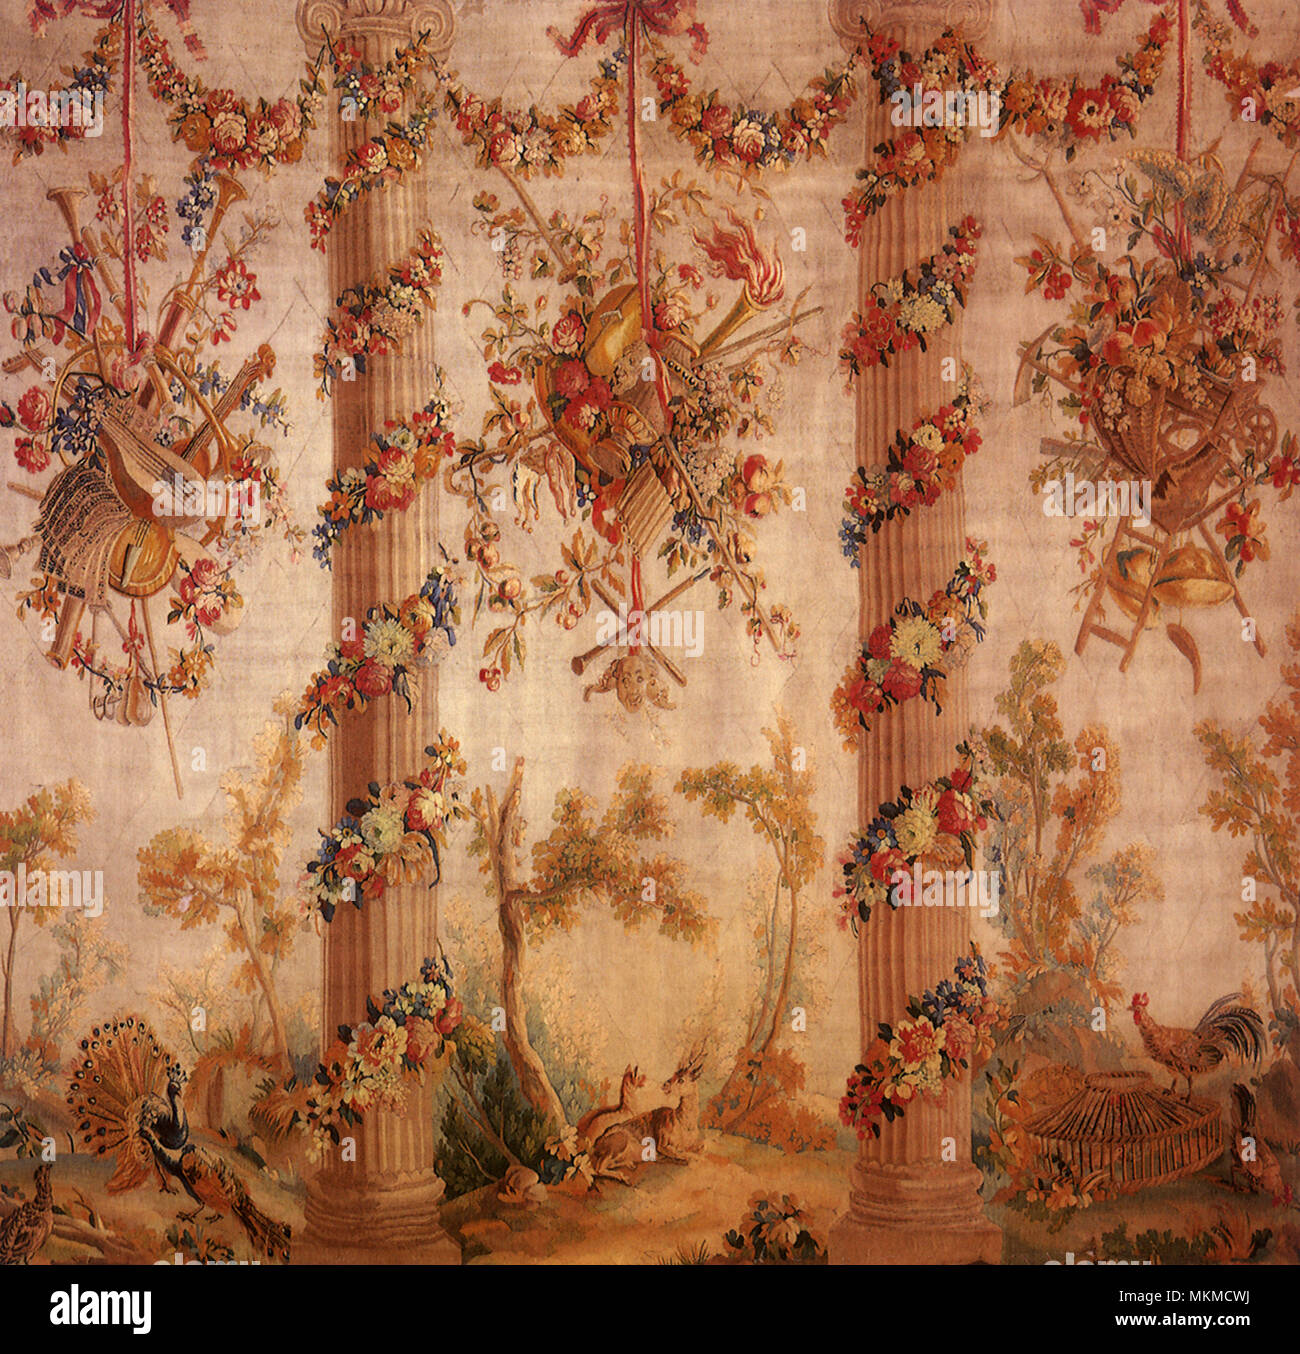 Decorative Tapestry with Columns Stock Photo